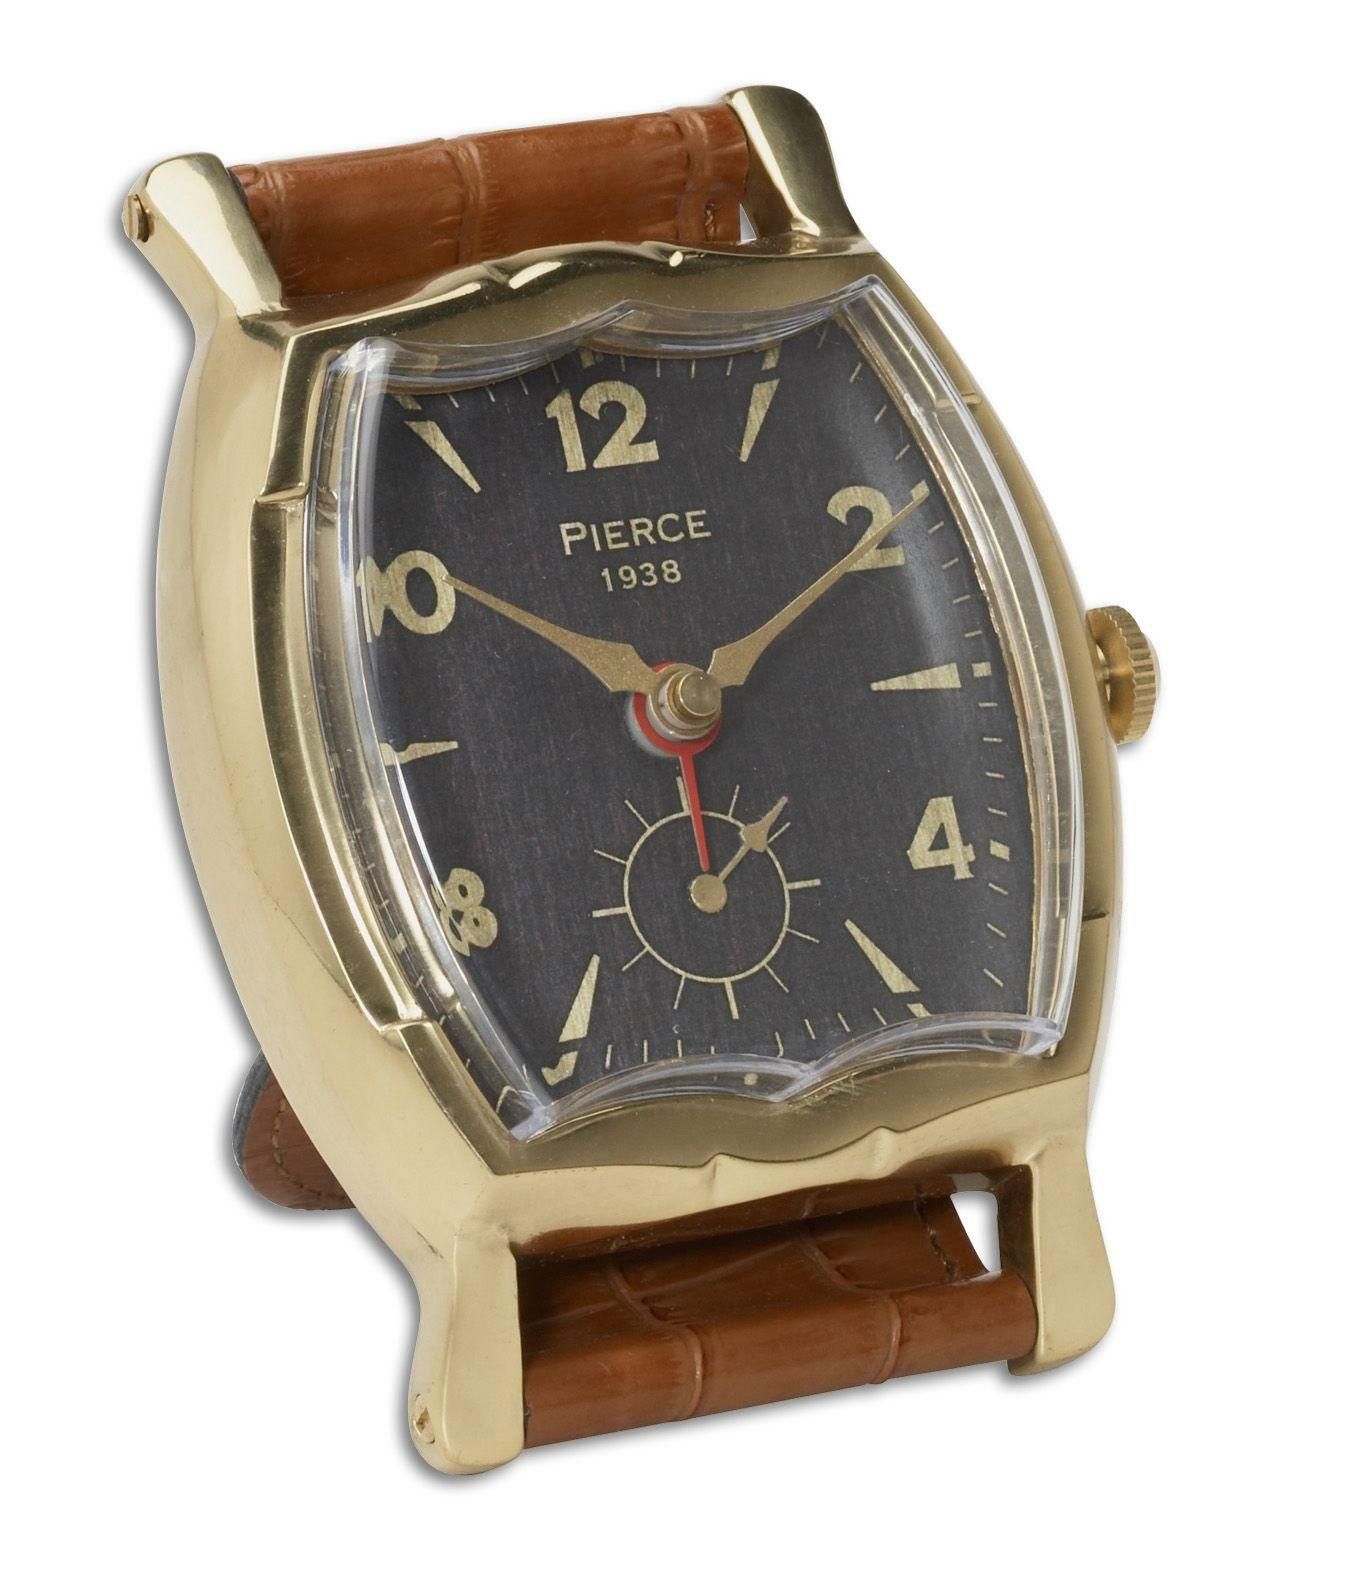 Uttermost Clocks Wristwatch Alarm Square Pierce Clock - Item Number: 06075